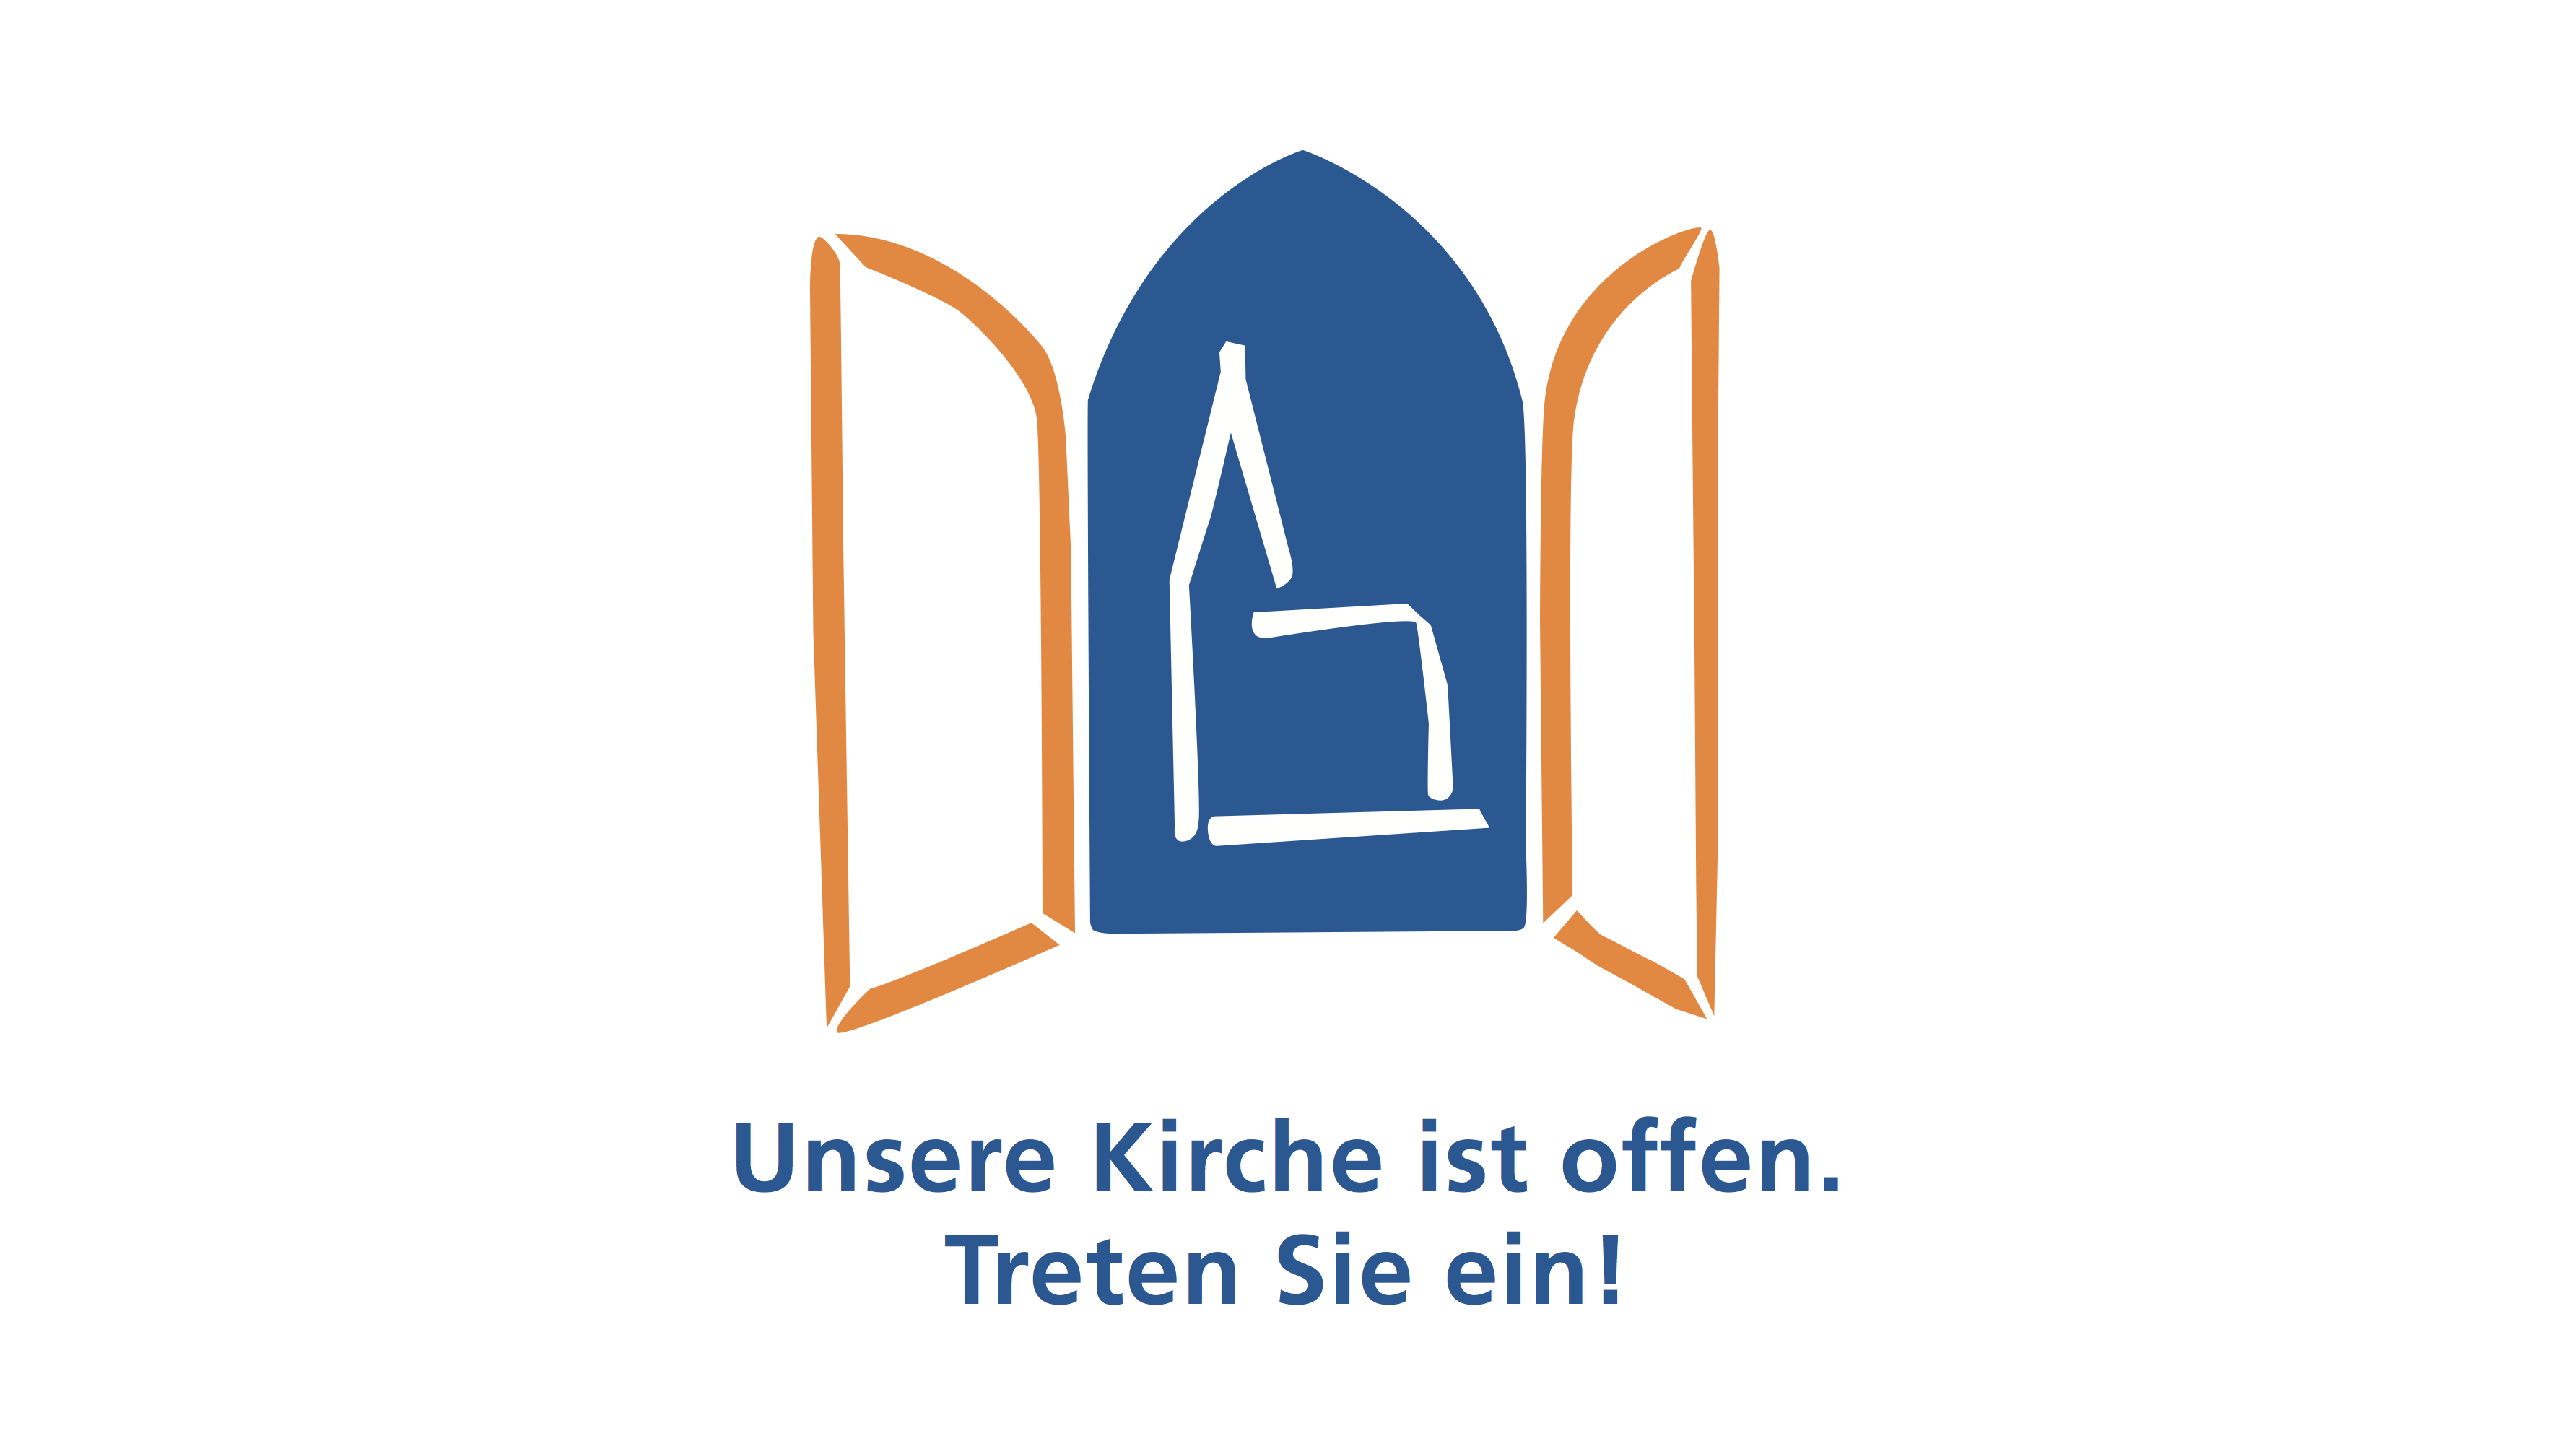 Ref ag offene kirchenmit Text 16 9